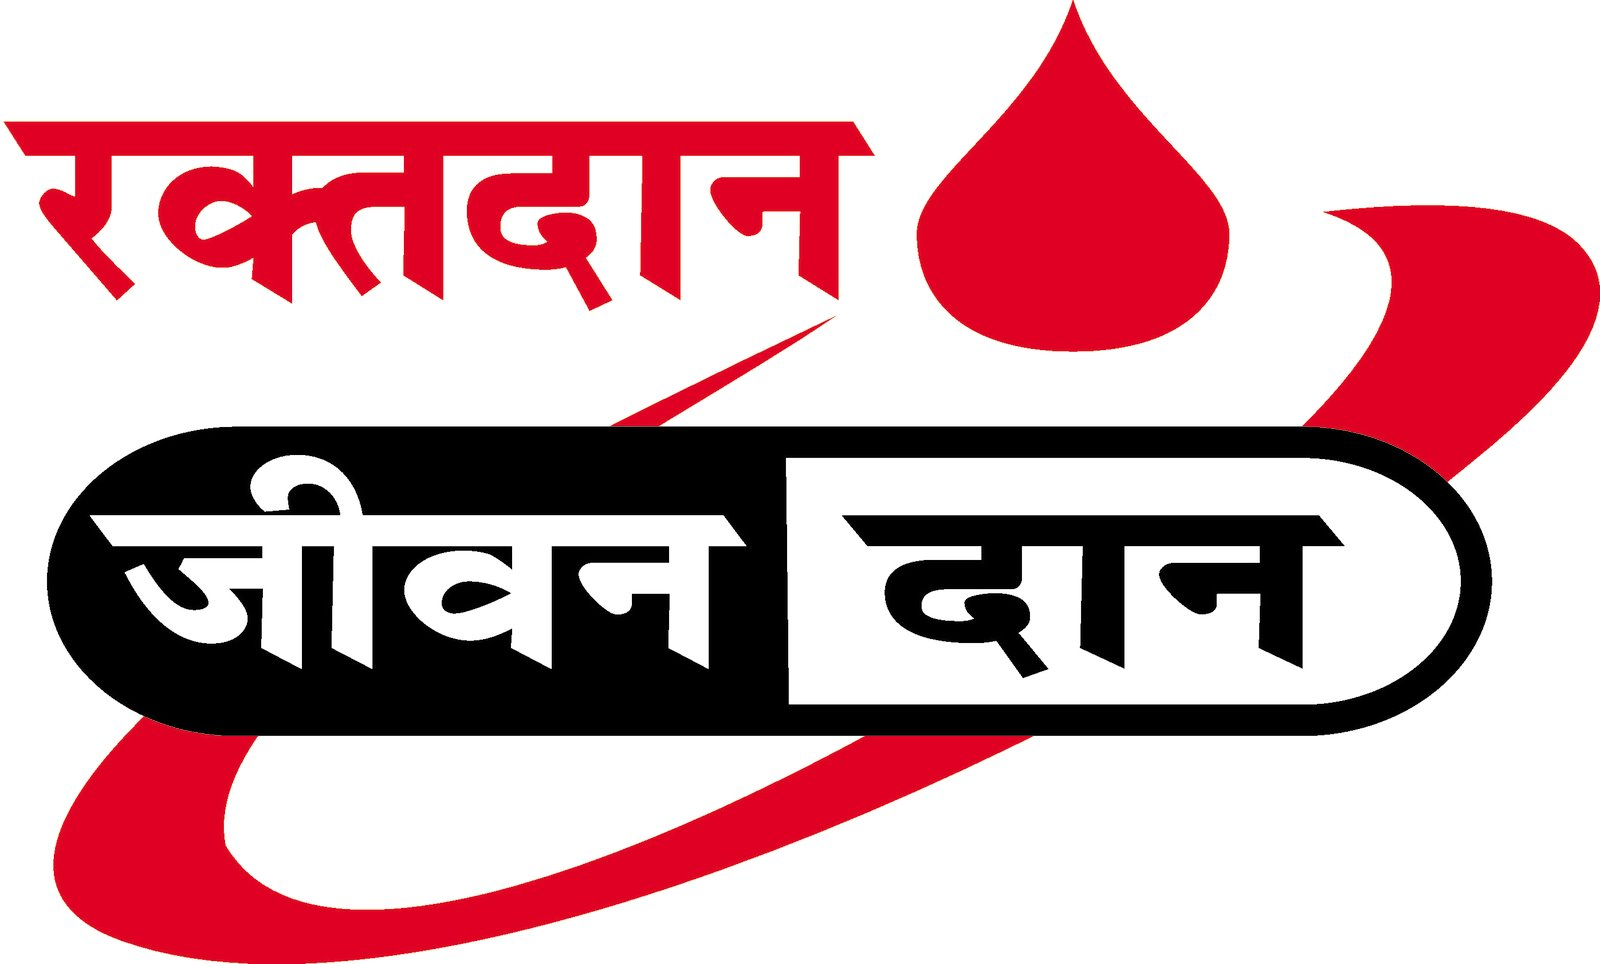 Blood Donation Slogans in Hindi and English